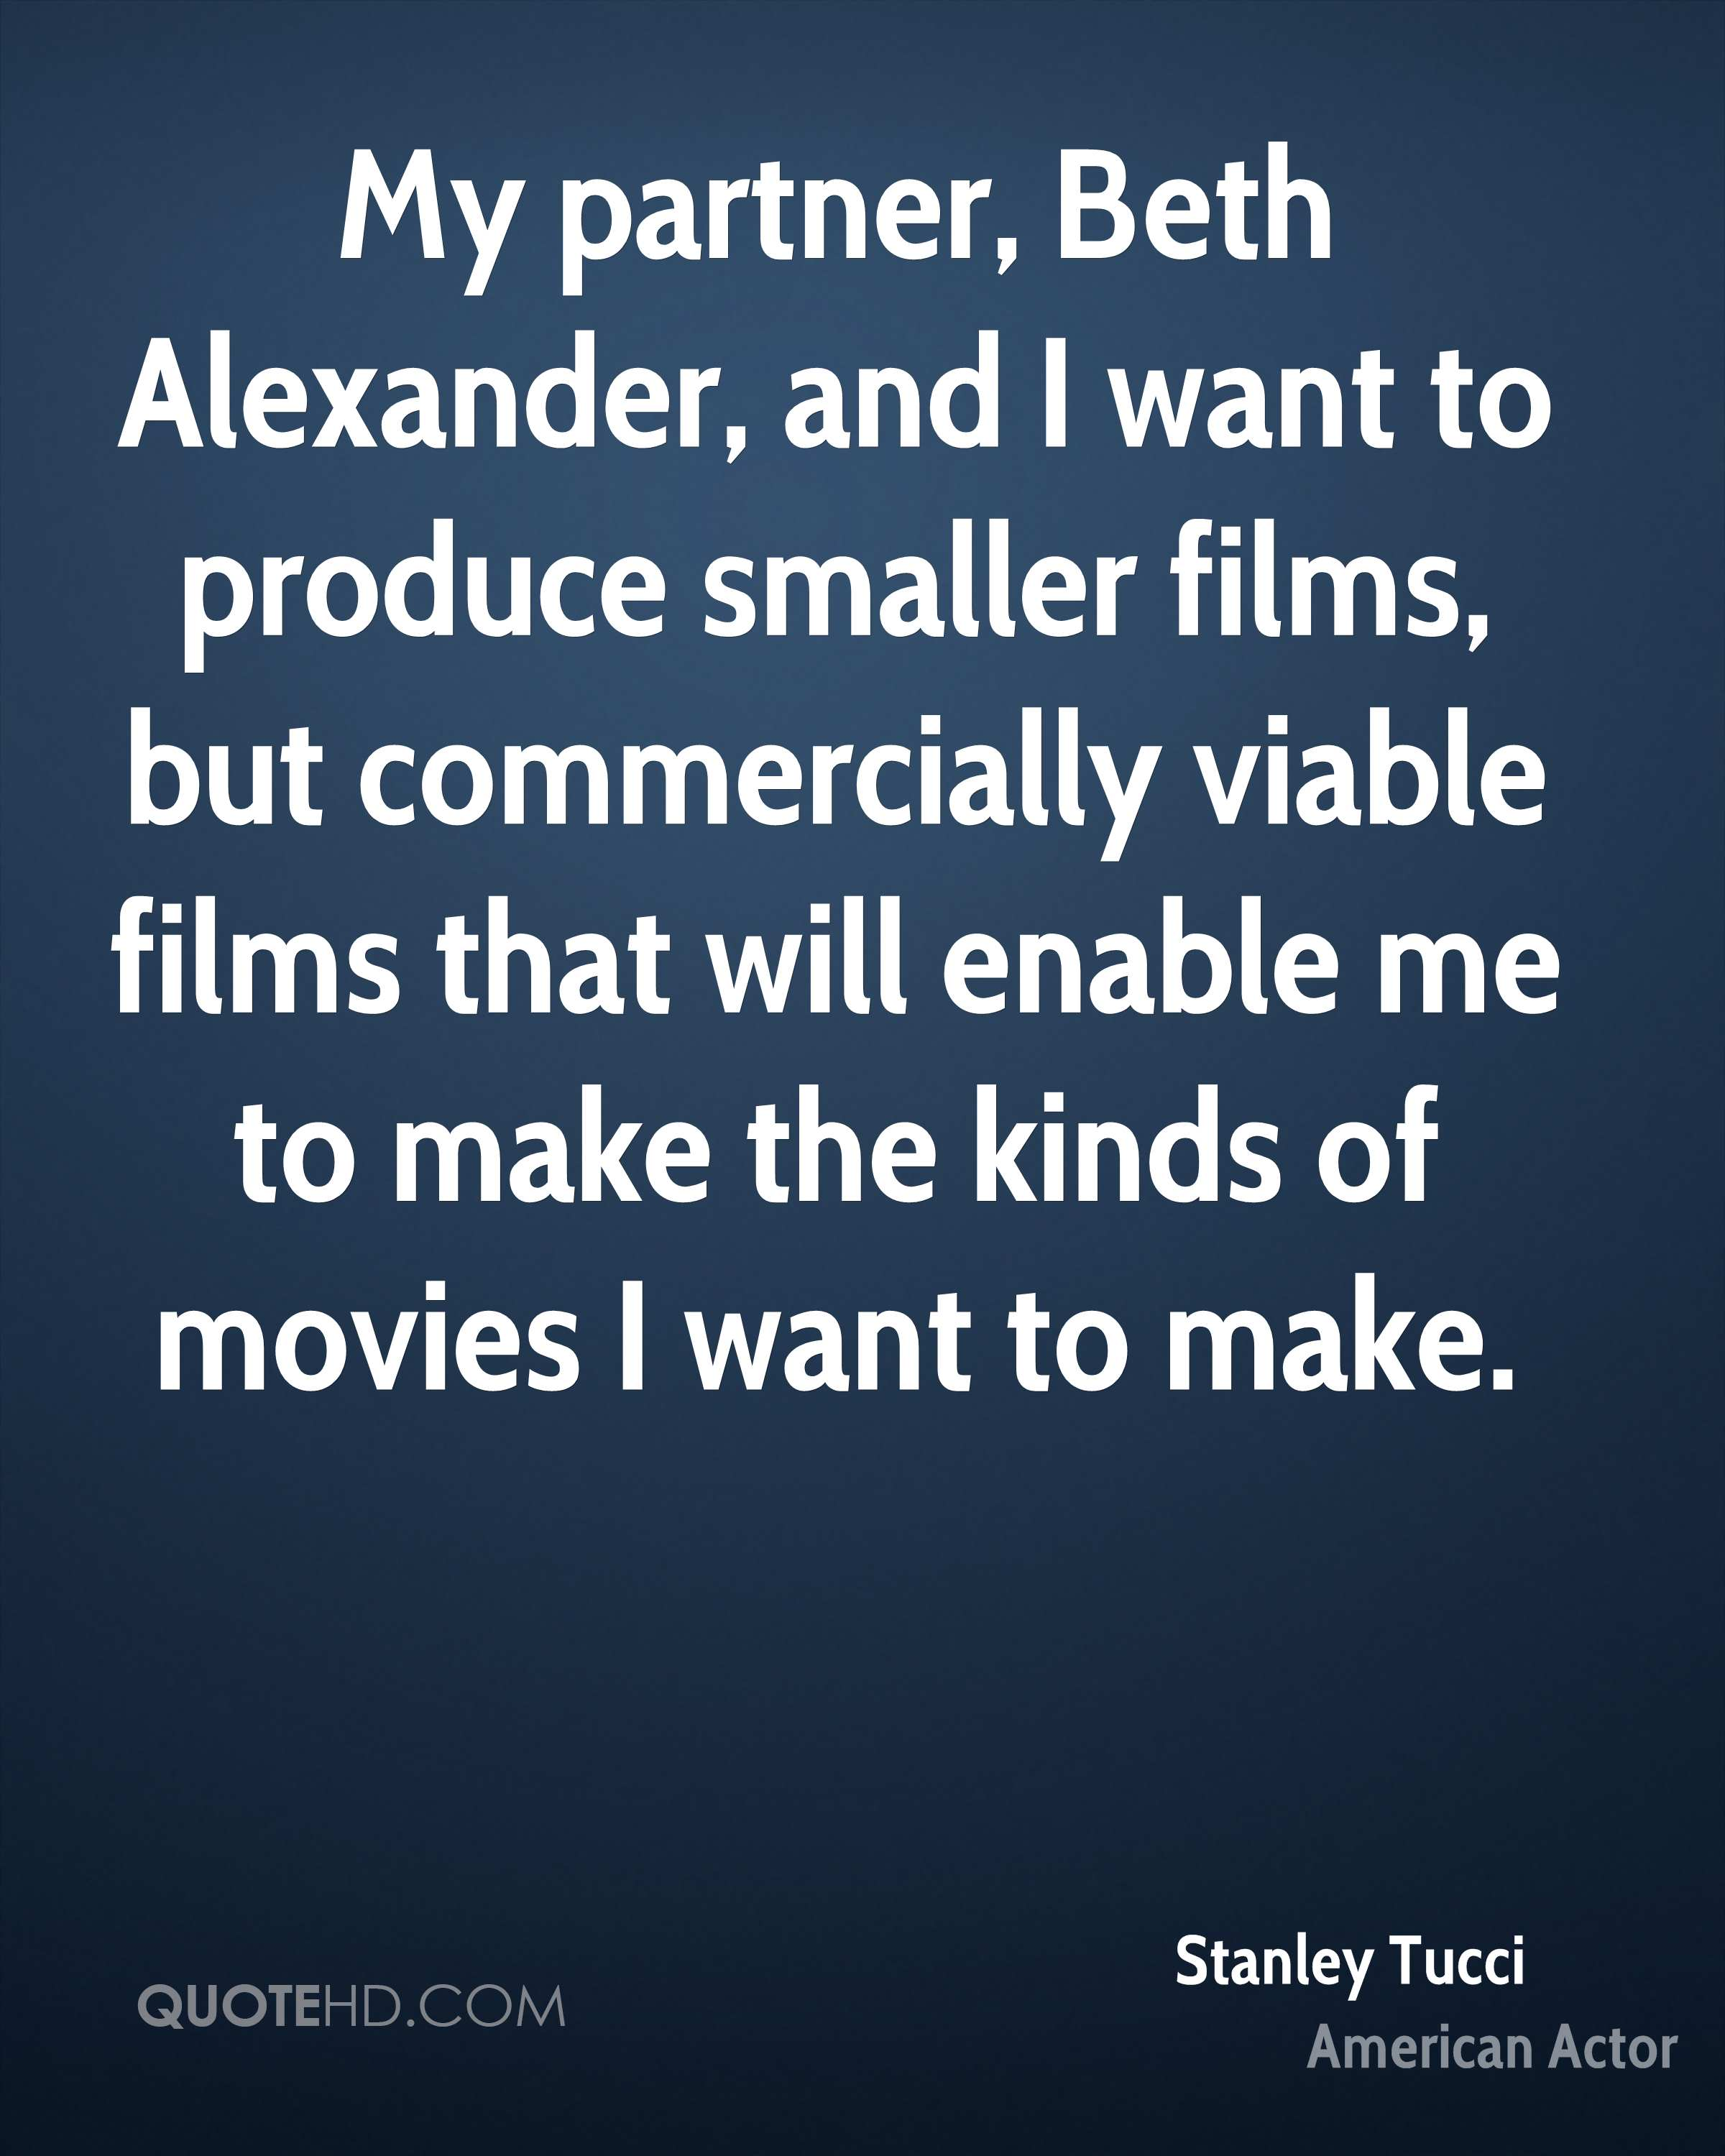 My partner, Beth Alexander, and I want to produce smaller films, but commercially viable films that will enable me to make the kinds of movies I want to make.